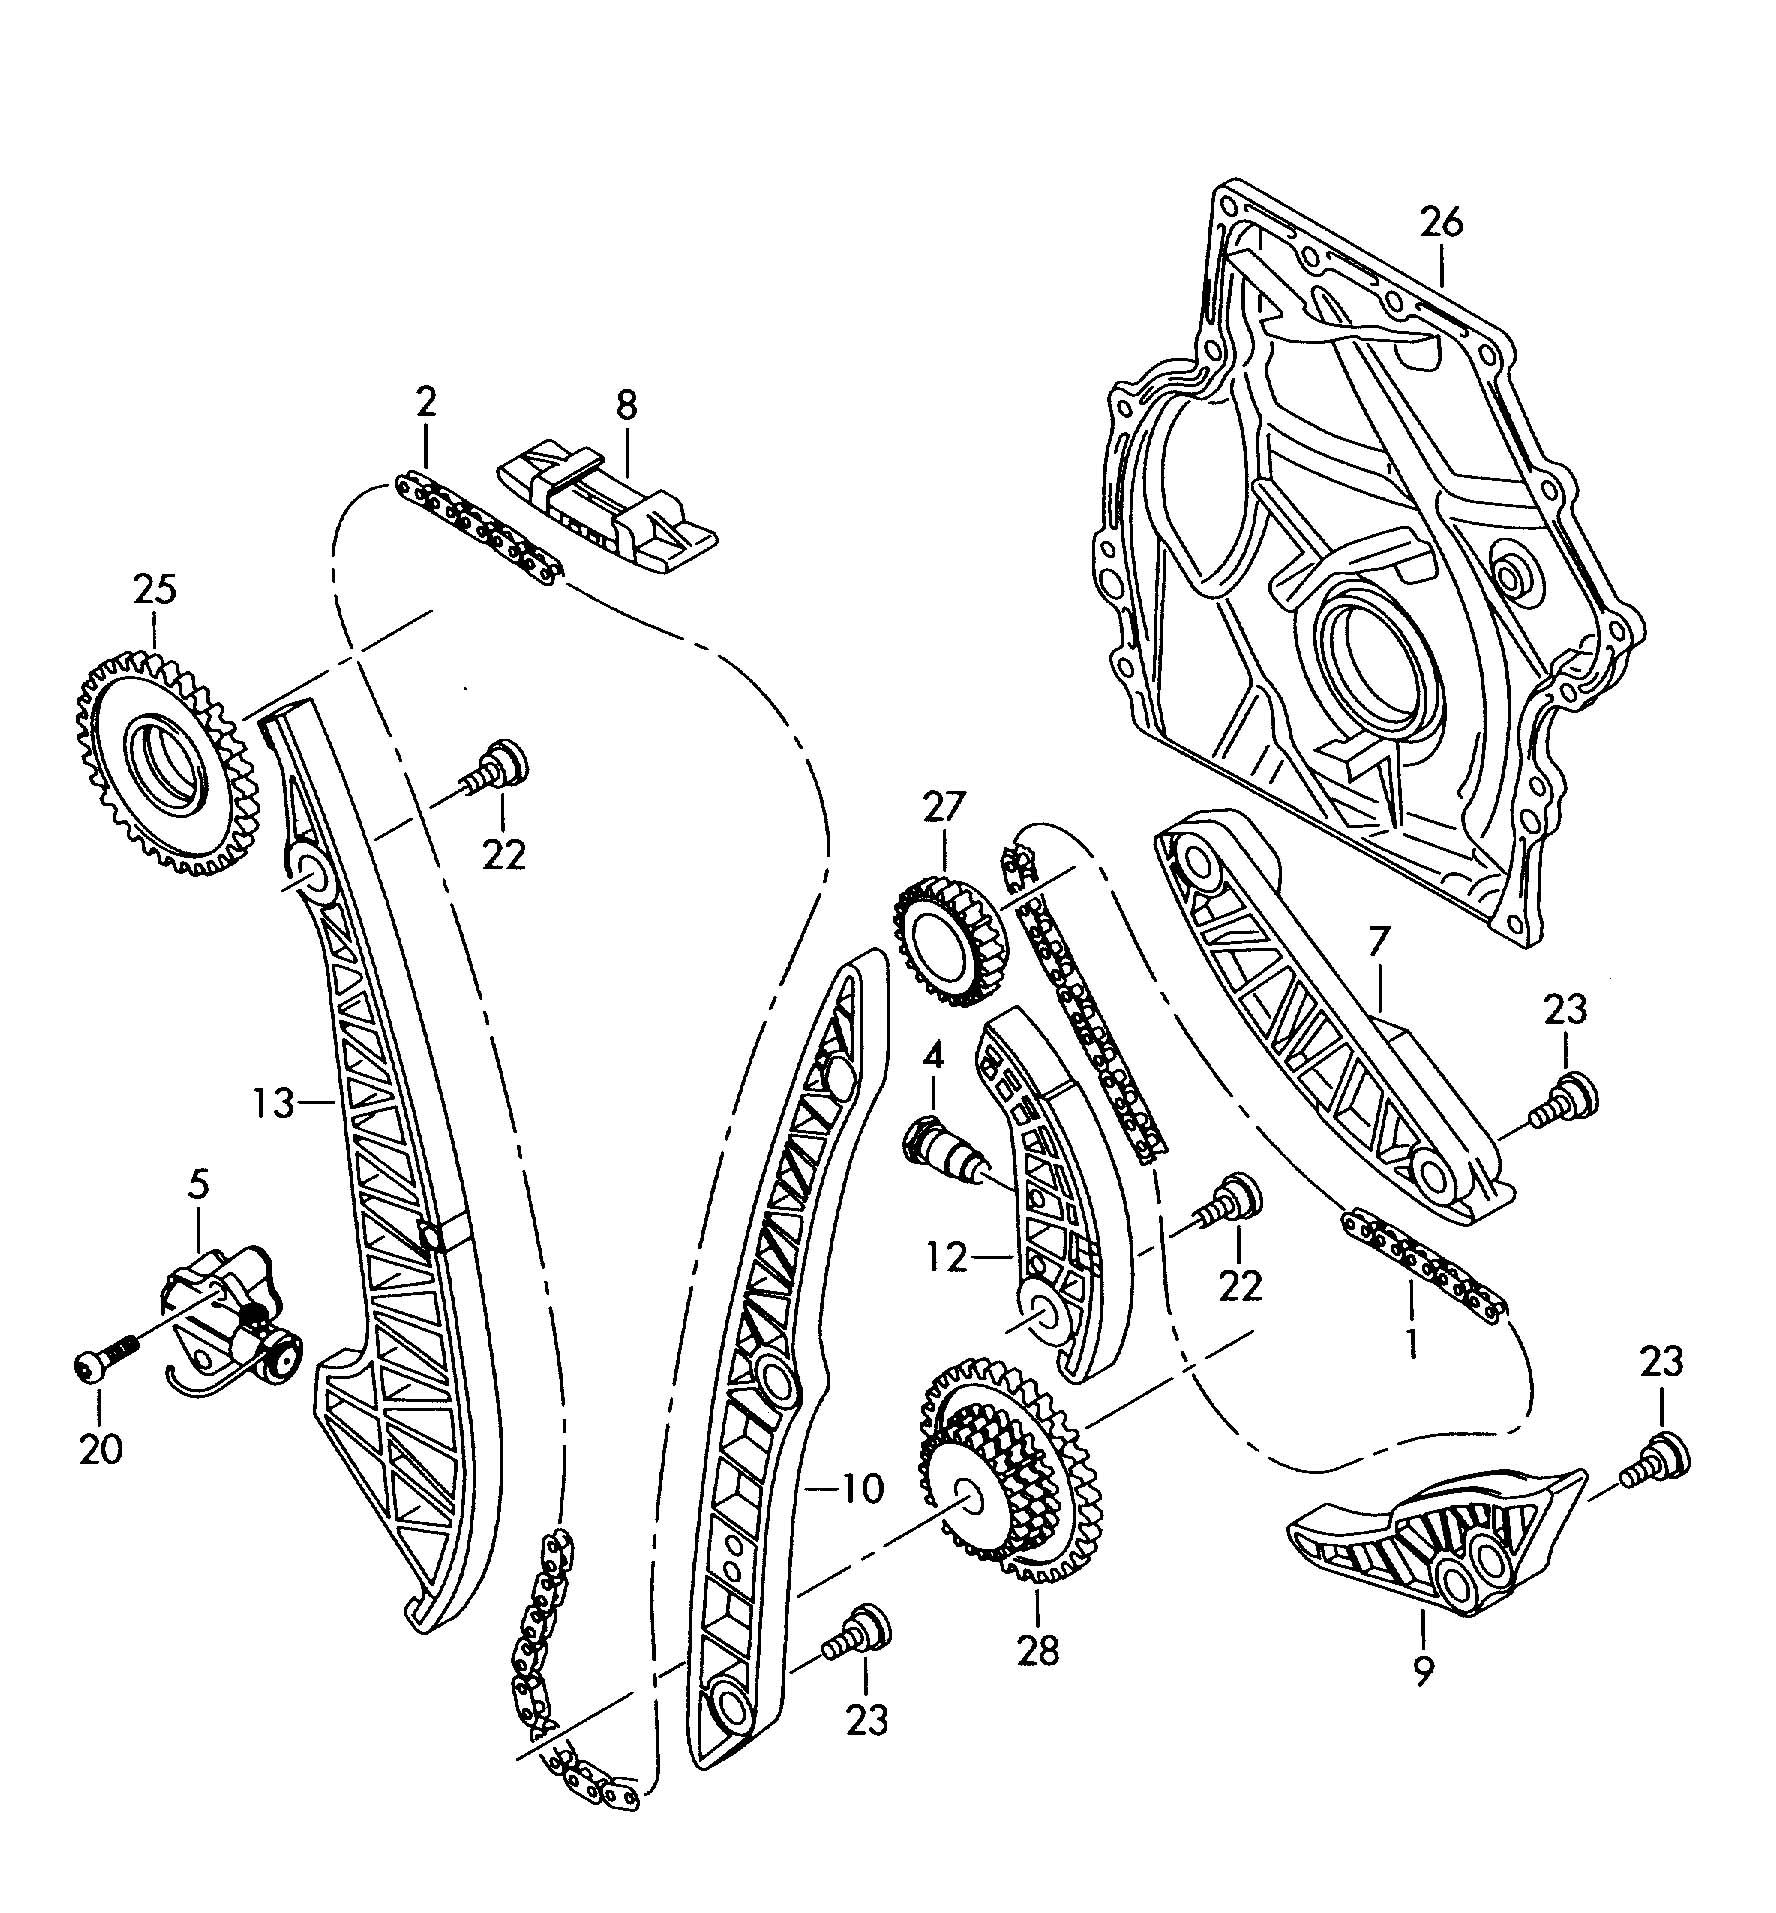 Timing Chain Timing Case Timing Chain Guide Rail Timing